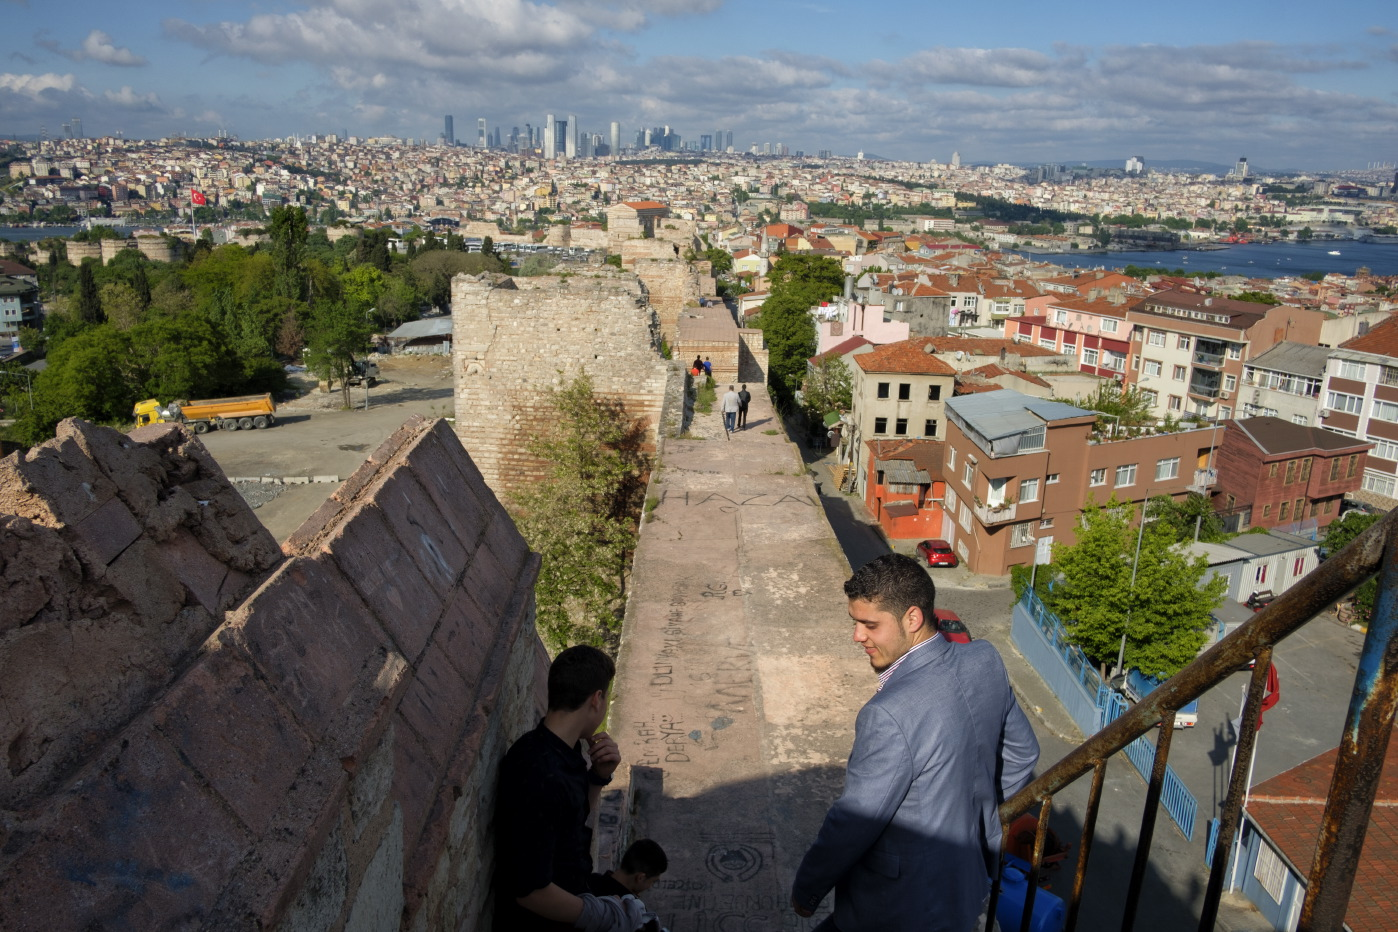 Some people walking along the old walls of Constantinople. In the background, a view of the city and the Bosporus. Istanbul, Turkey 2016. © Matteo Bastianelli